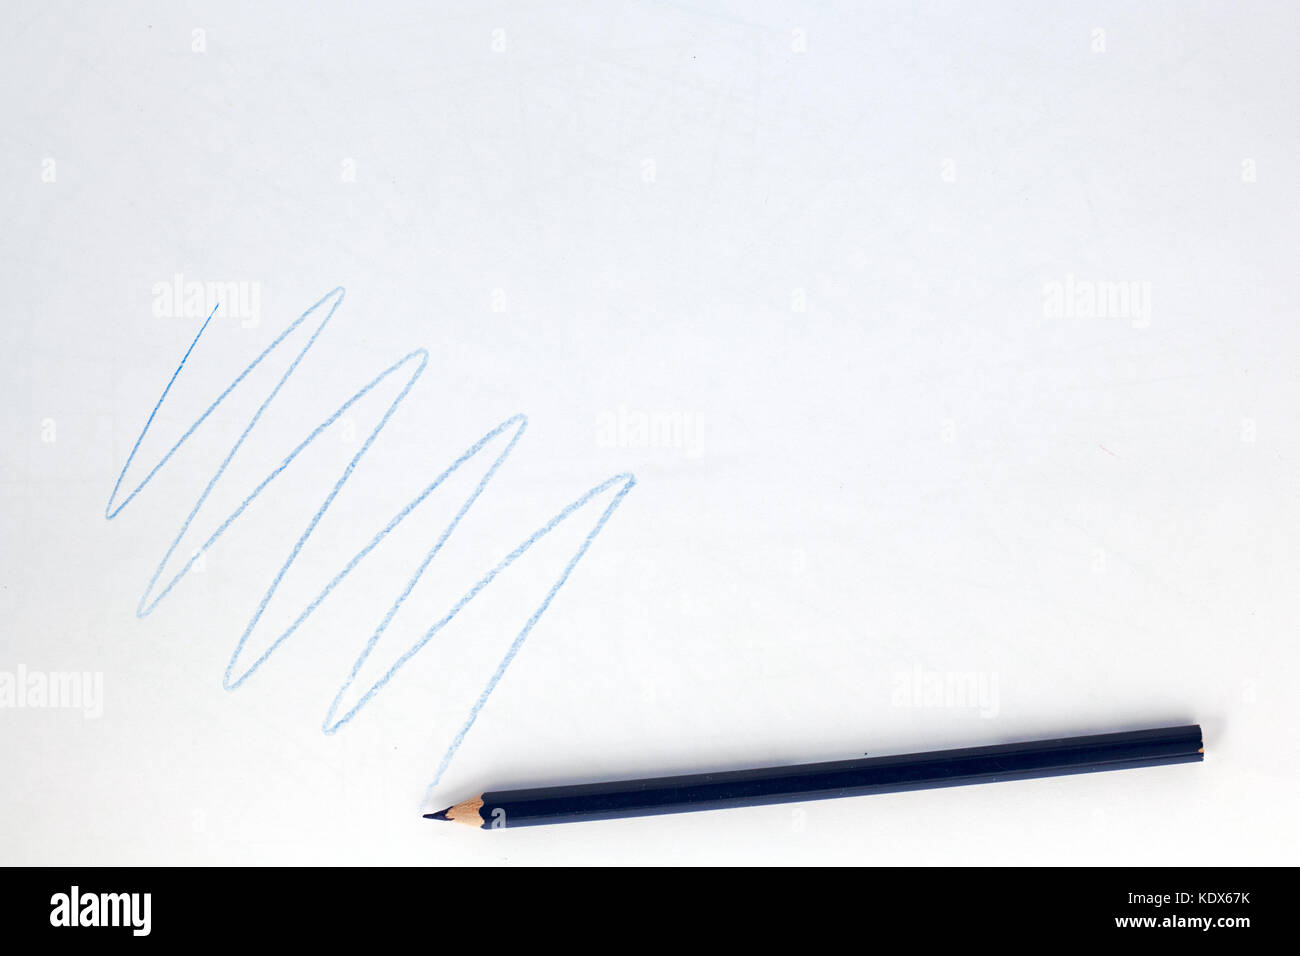 Drawing Lines With Pencil : Crayon lines stock photos images alamy